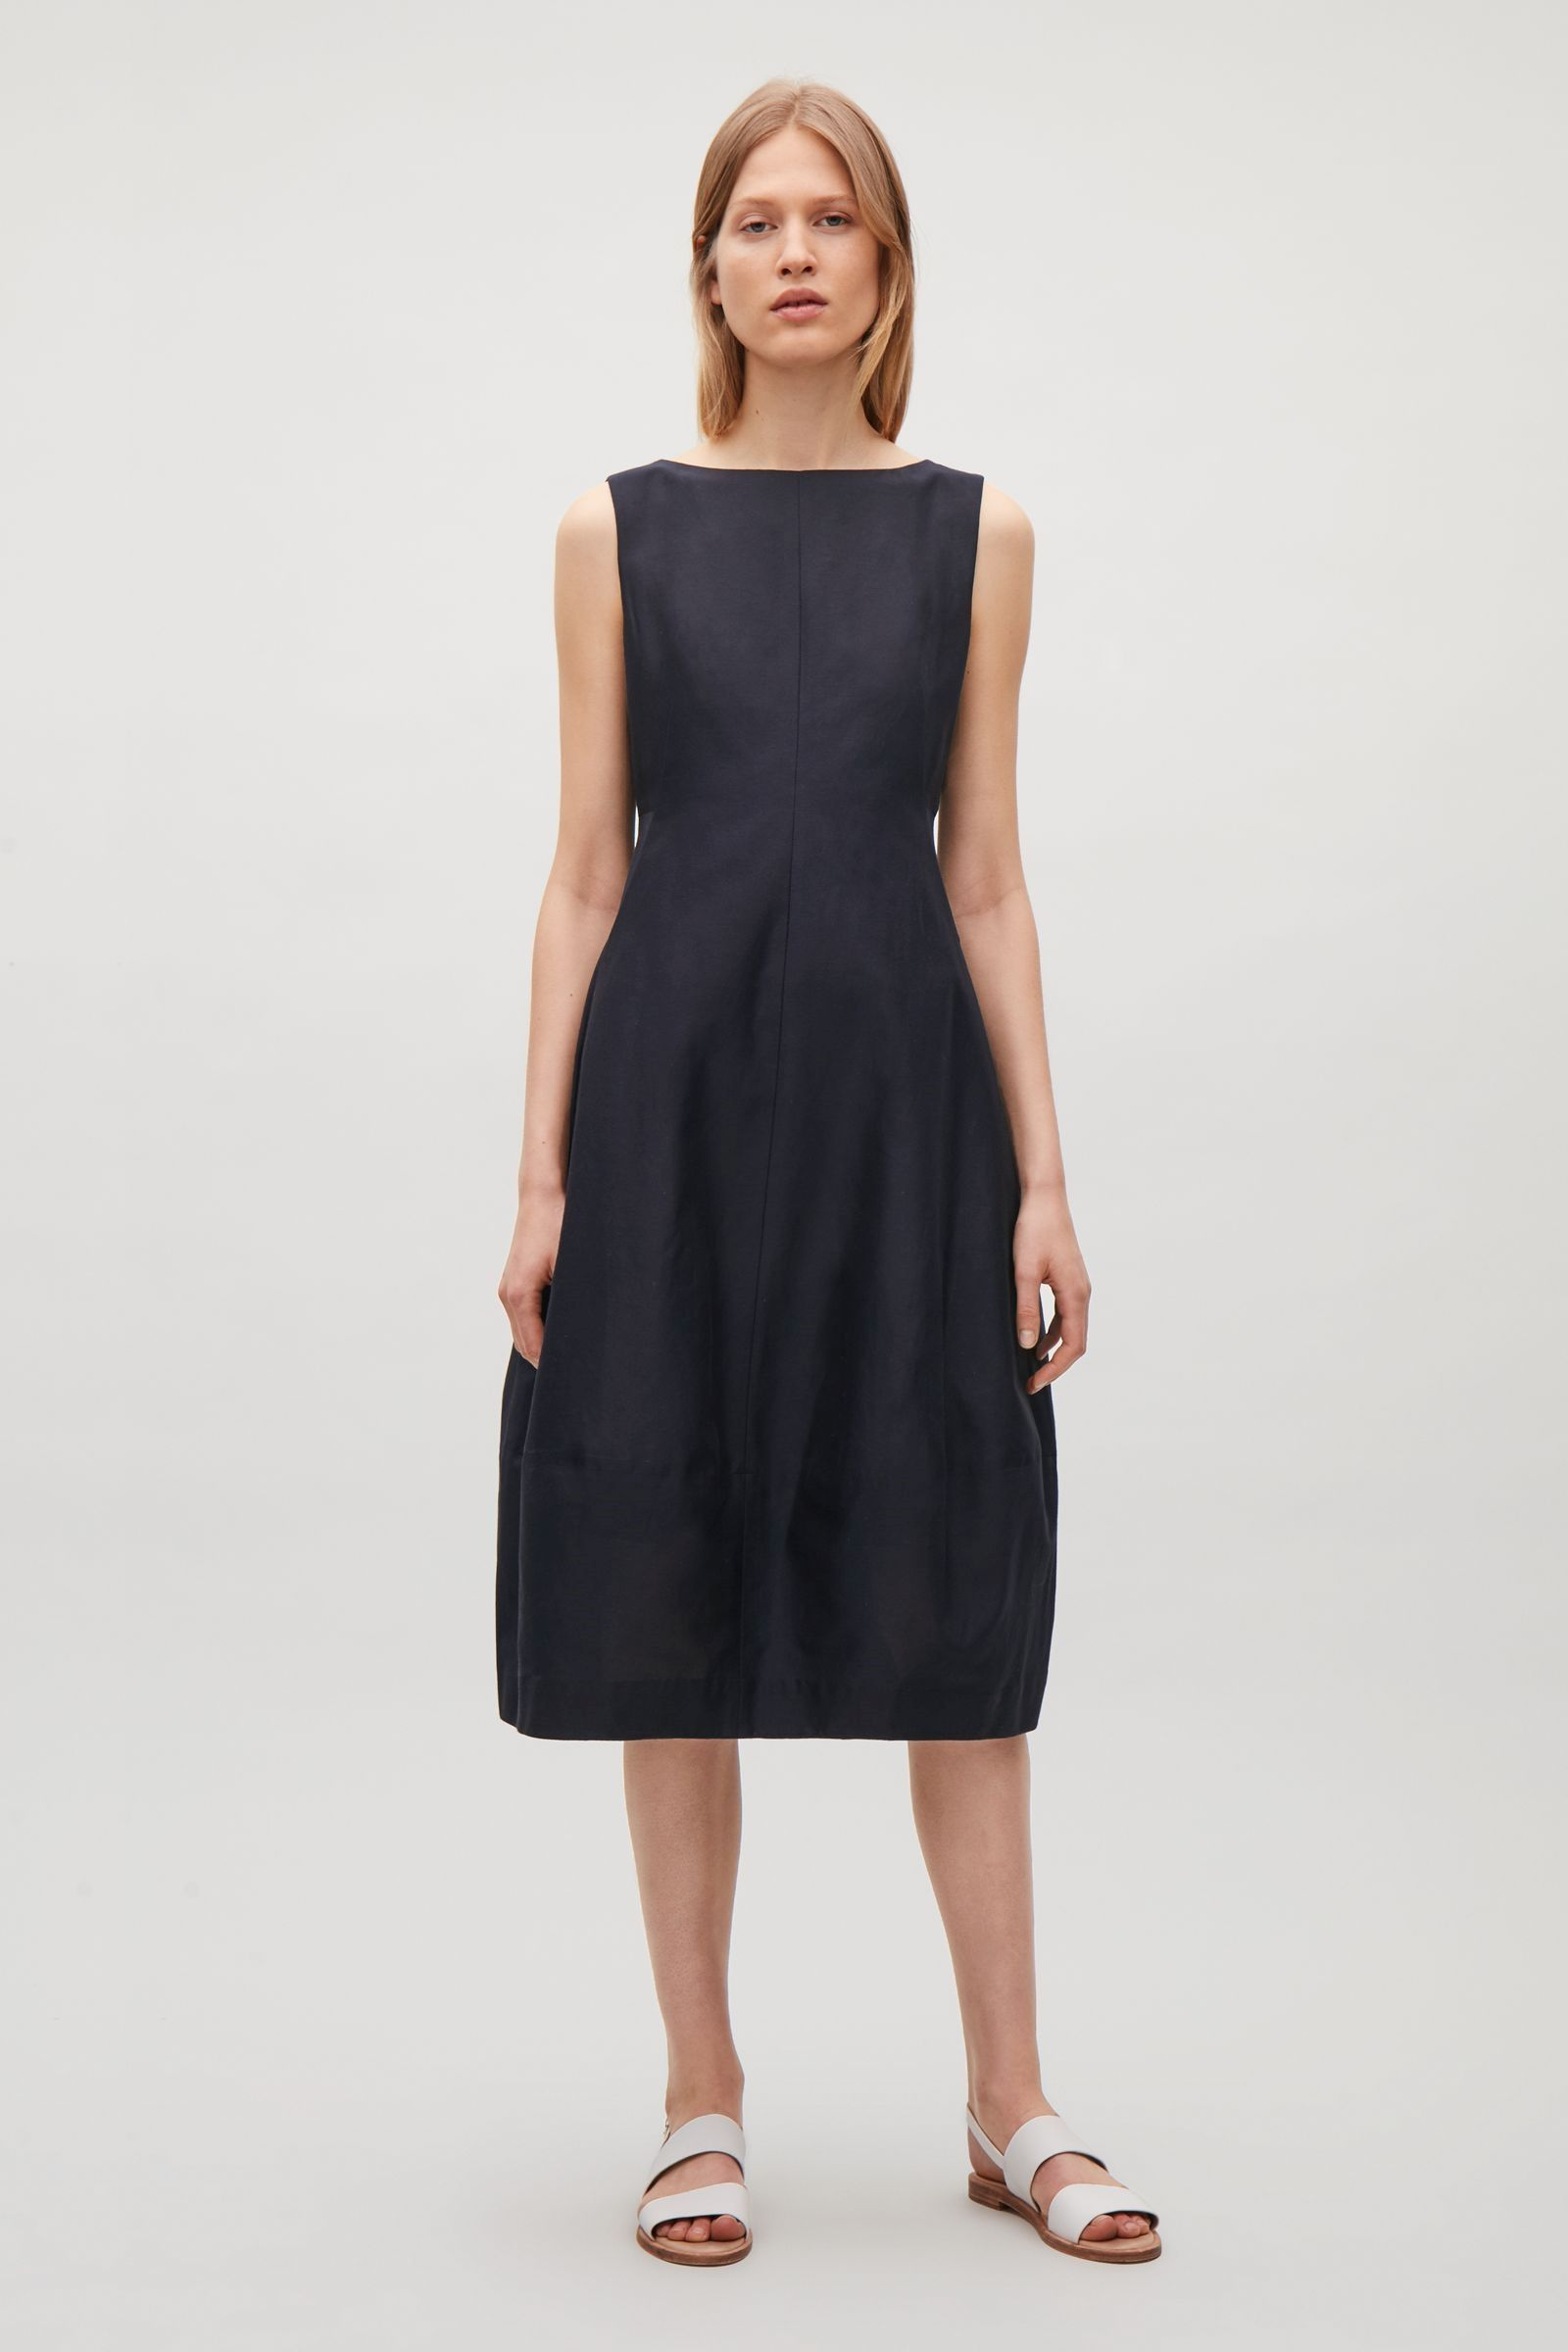 eb957929ec4b Sleeveless dress with cocoon skirt - Dark Navy - Dresses - COS CZ in ...